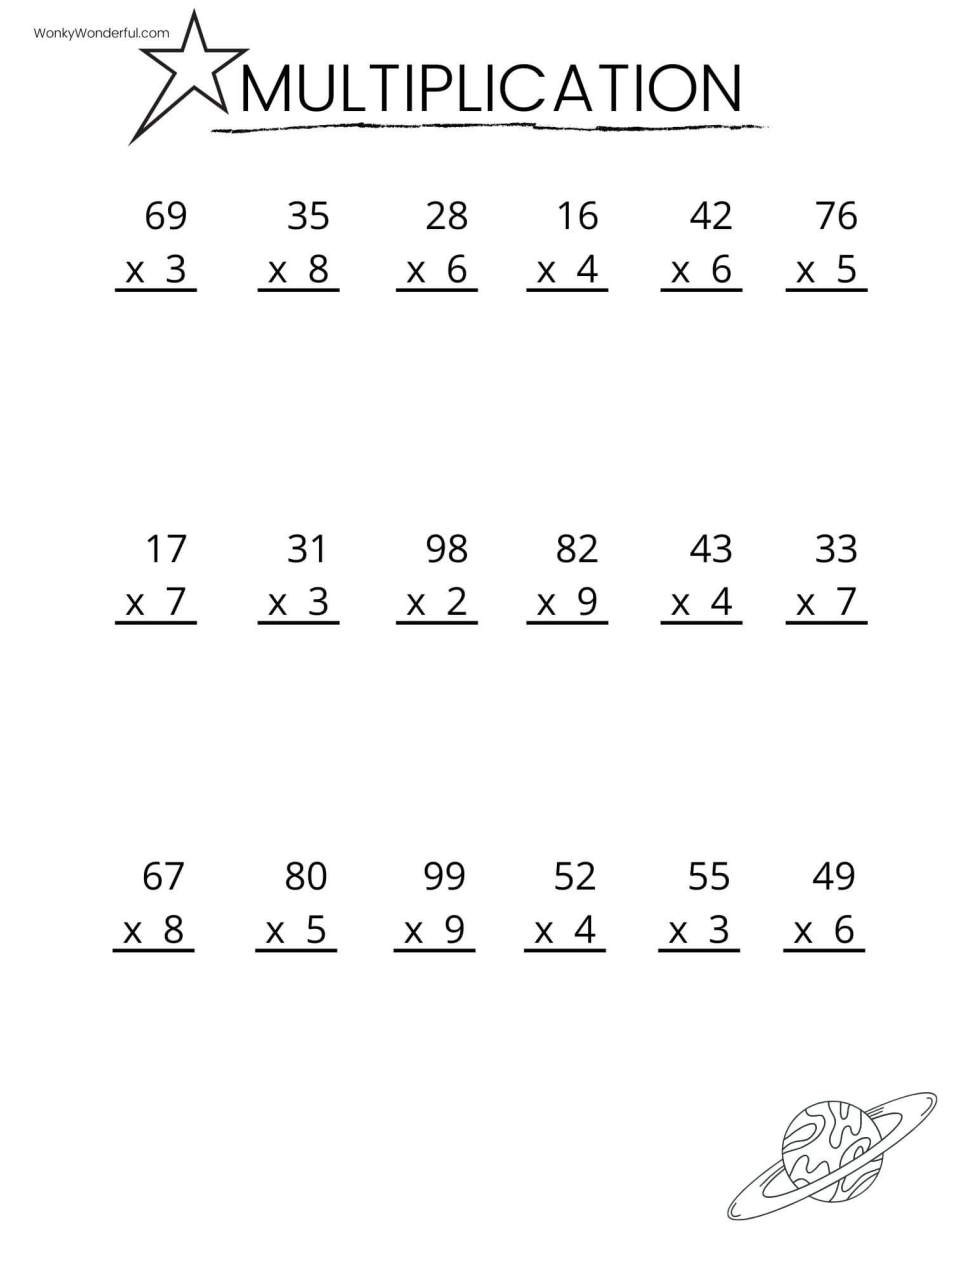 2nd Grade Multiplication Worksheets Free Printable Multiplication Worksheets Wonkywonderful